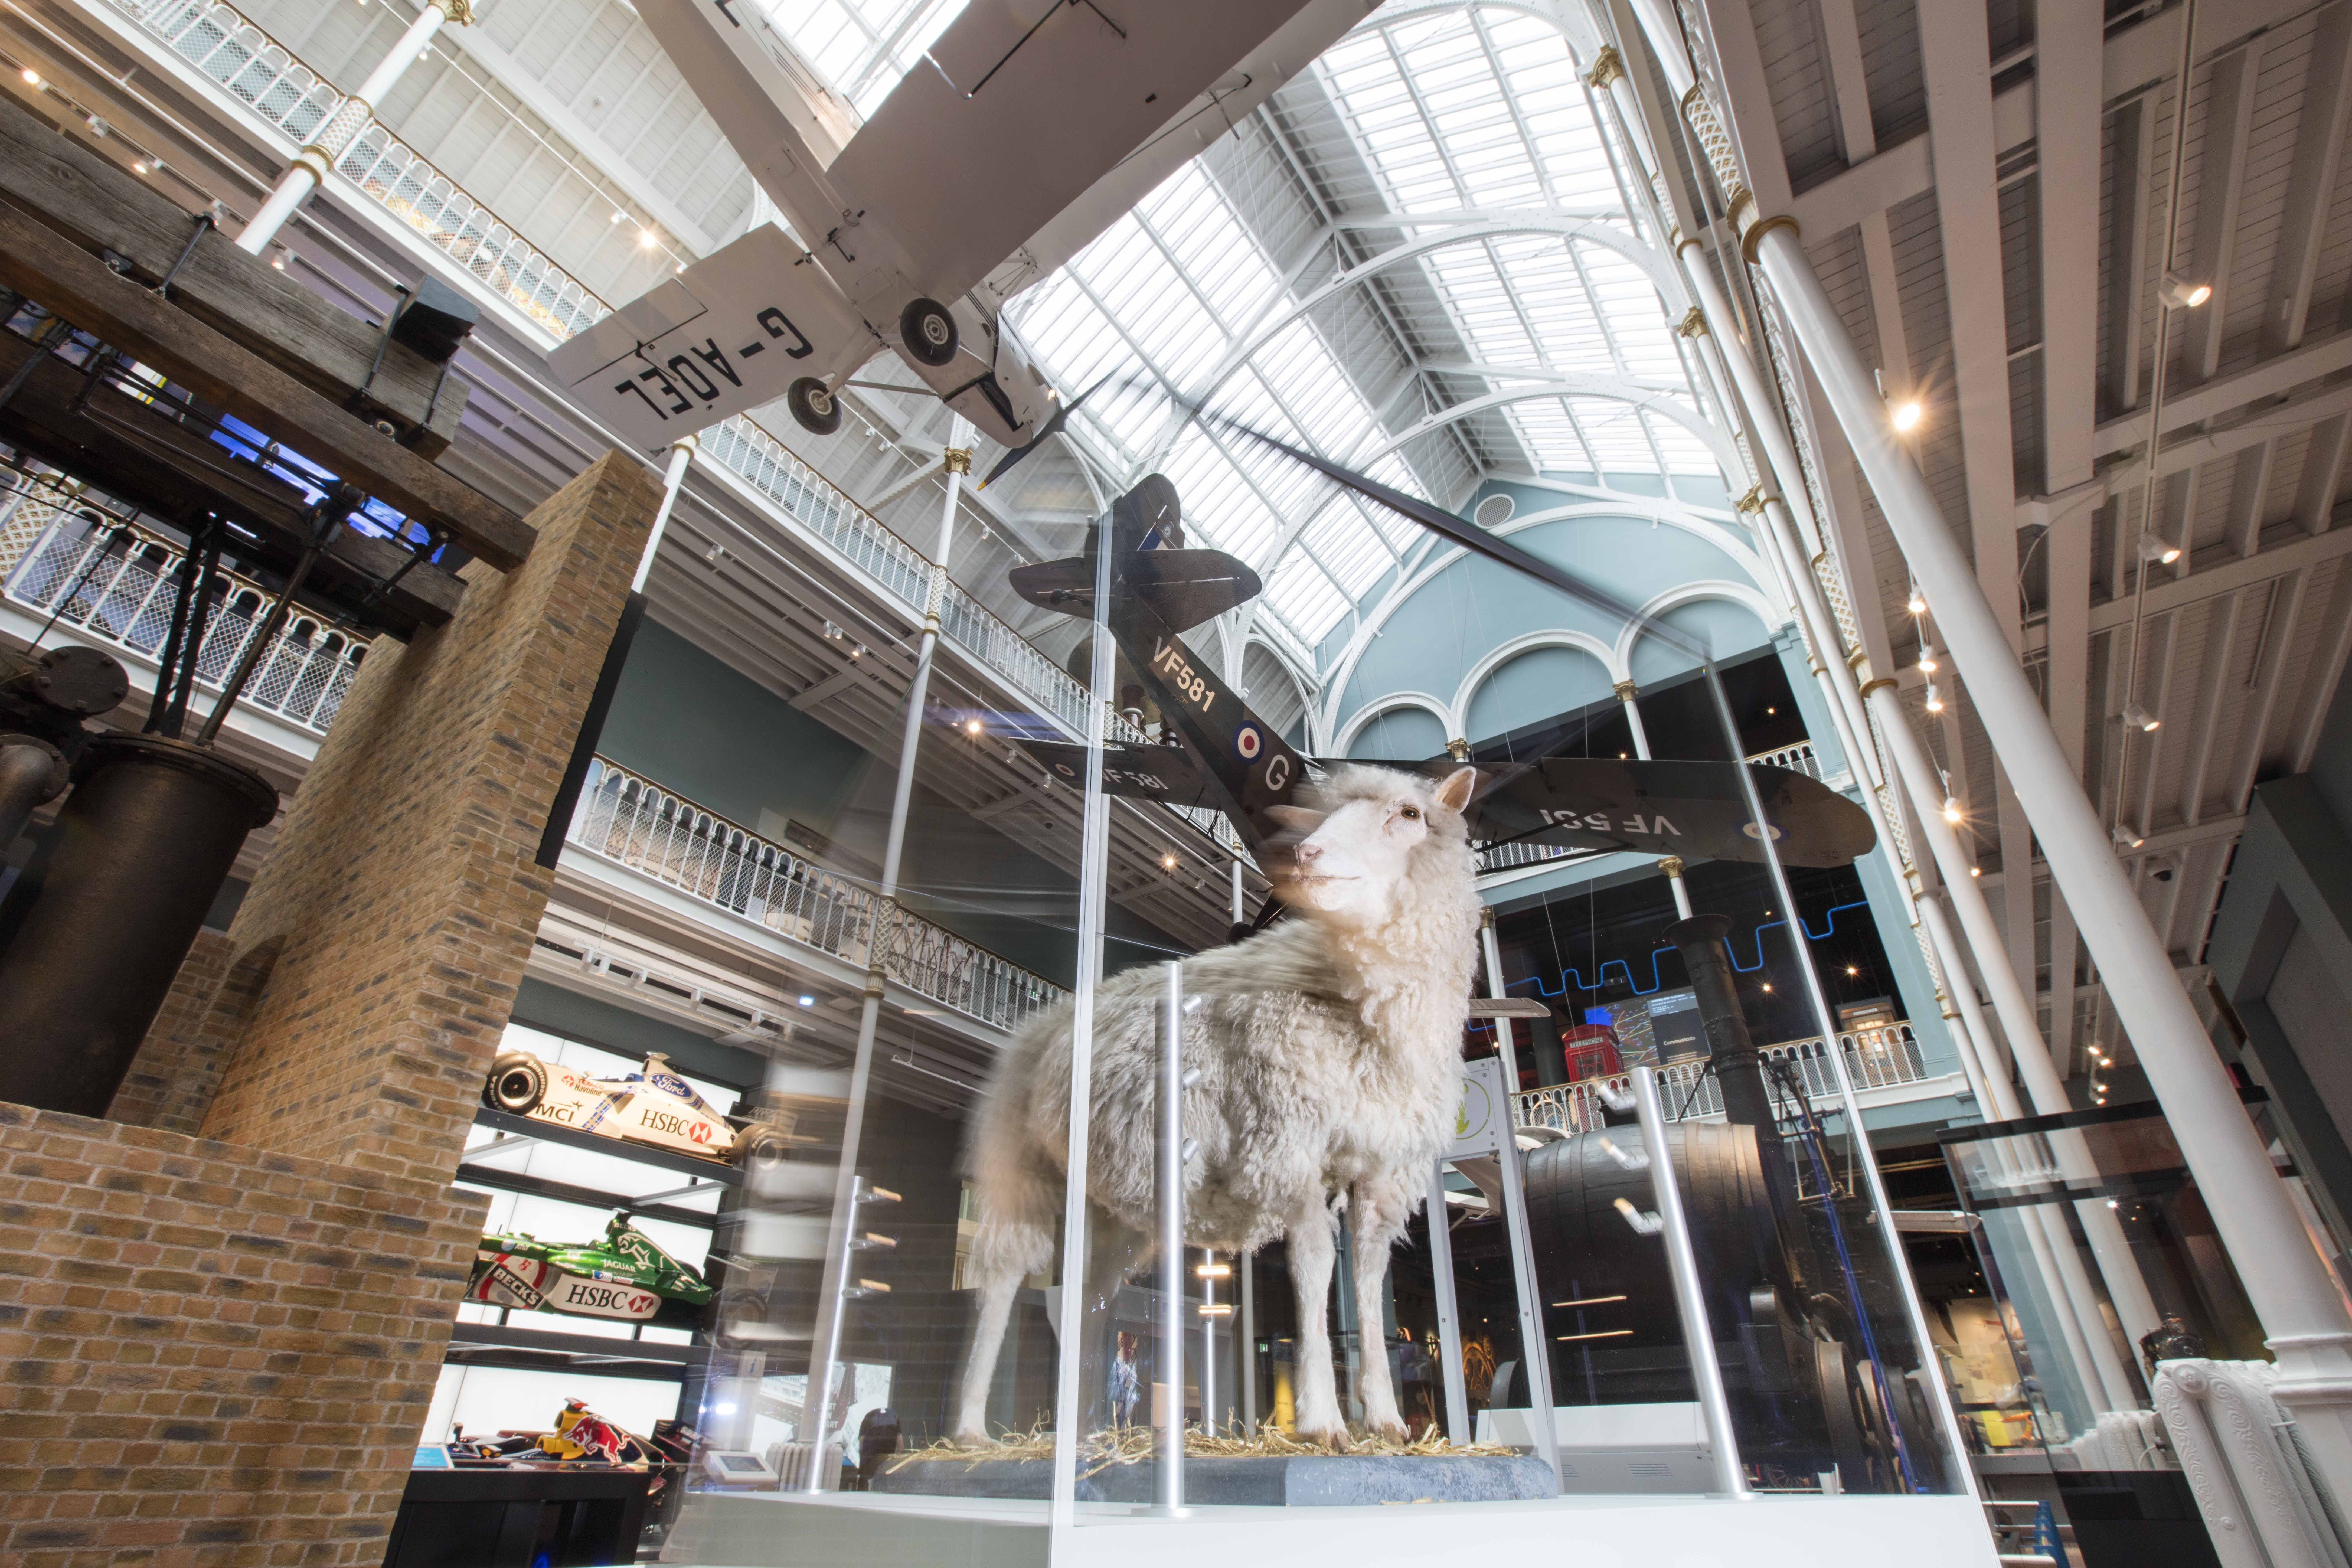 Dolly the sheep on display in the Explore gallery at the National Museum of Scotland